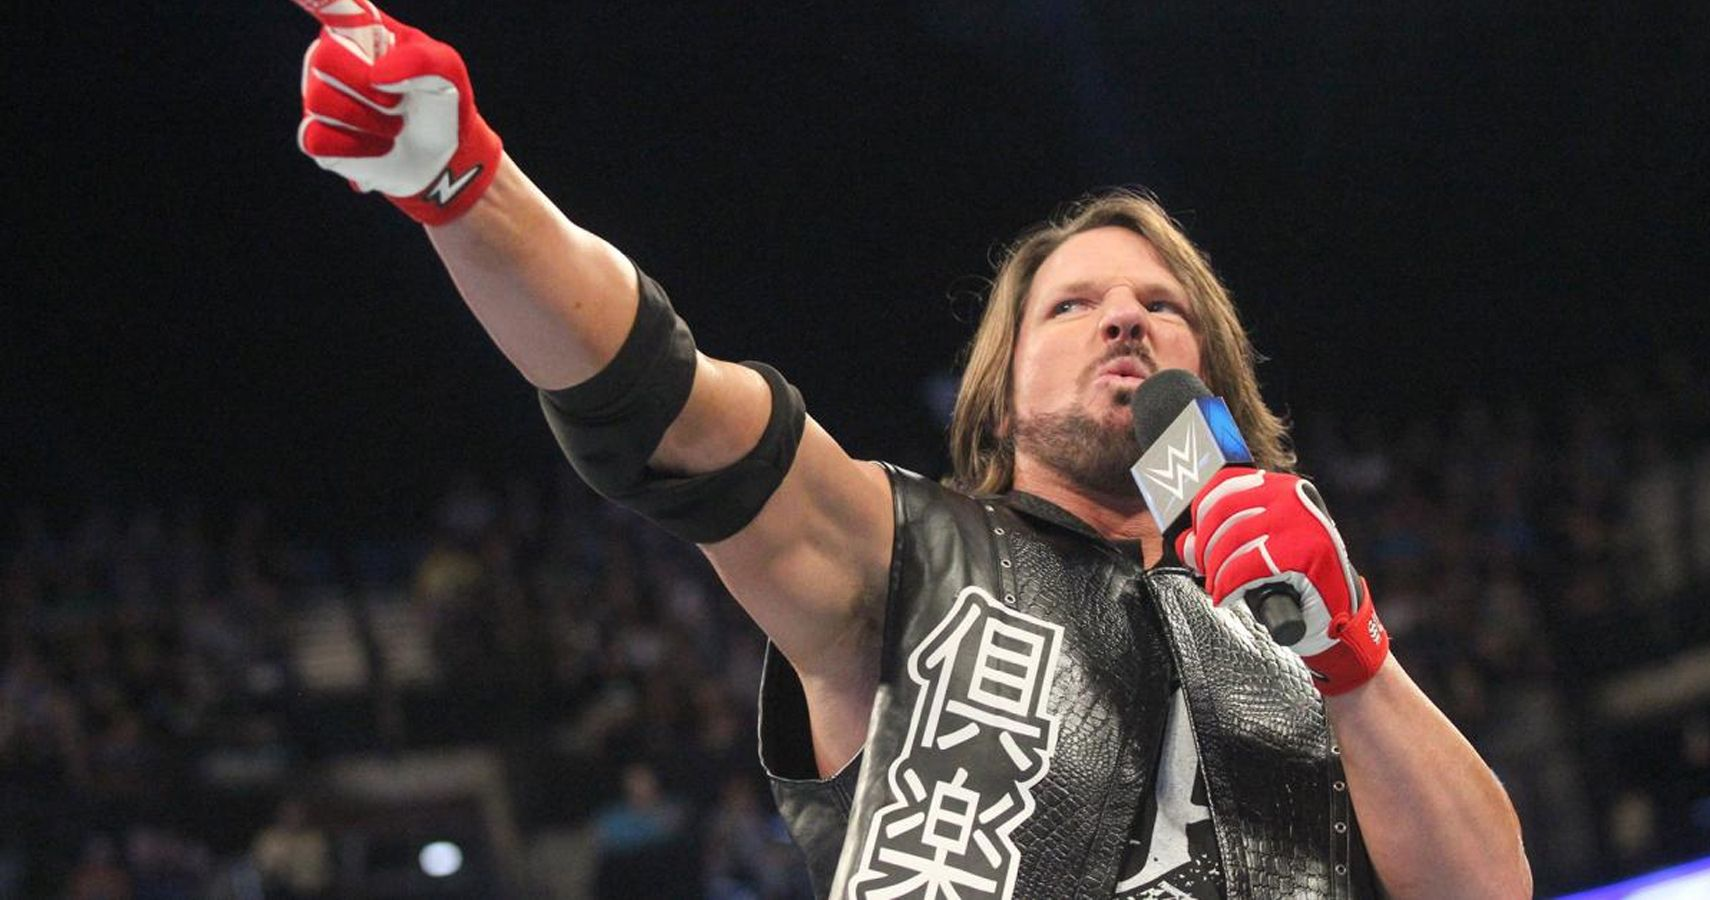 A.J. Styles Hints At Dream Match With WWE Hall Of Famer